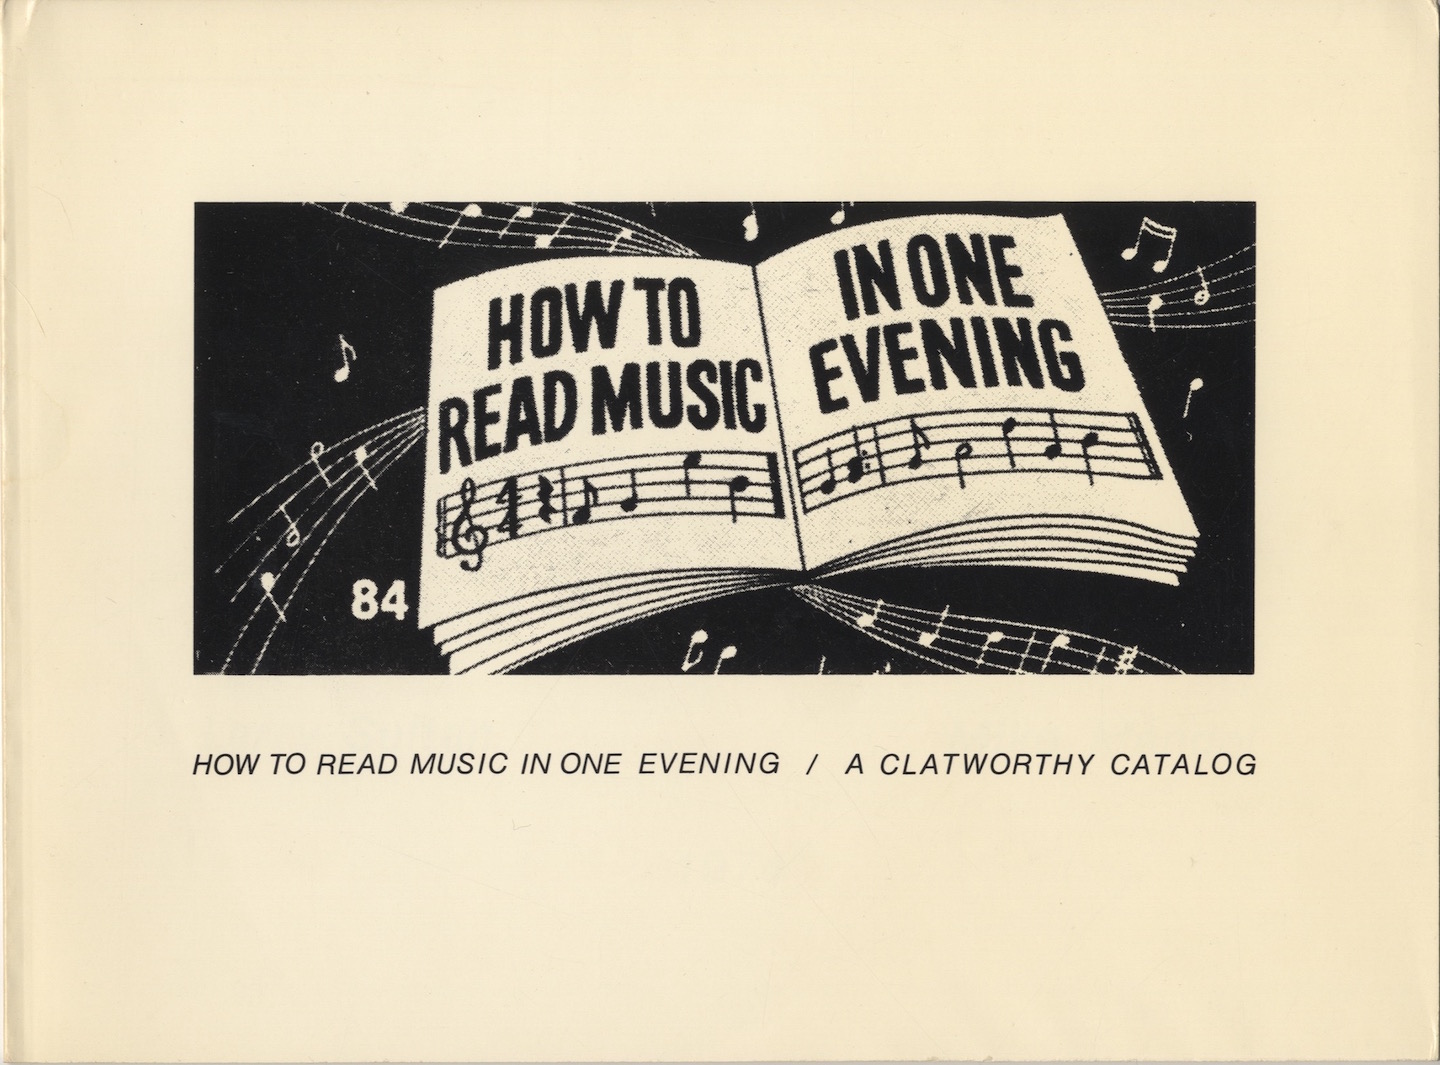 Larry Sultan and Mike Mandel: How to Read Music in One Evening / A Clatworthy Catalog [SIGNED ASSOCIATION COPY (by Larry Sultan)]